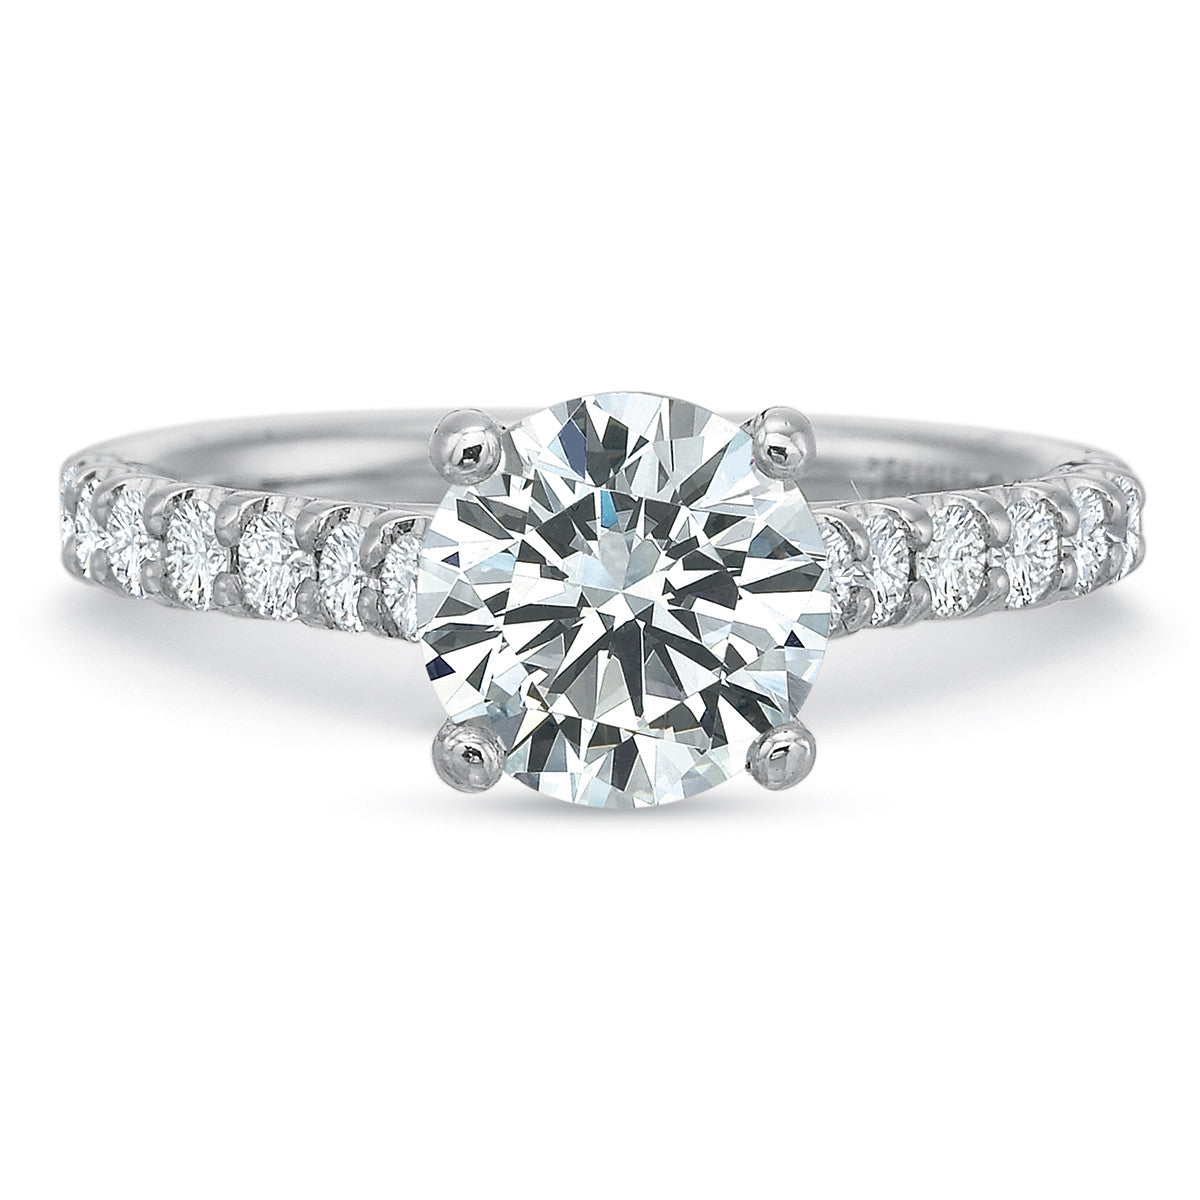 18K White Gold Diamond Accent Engagement Ring